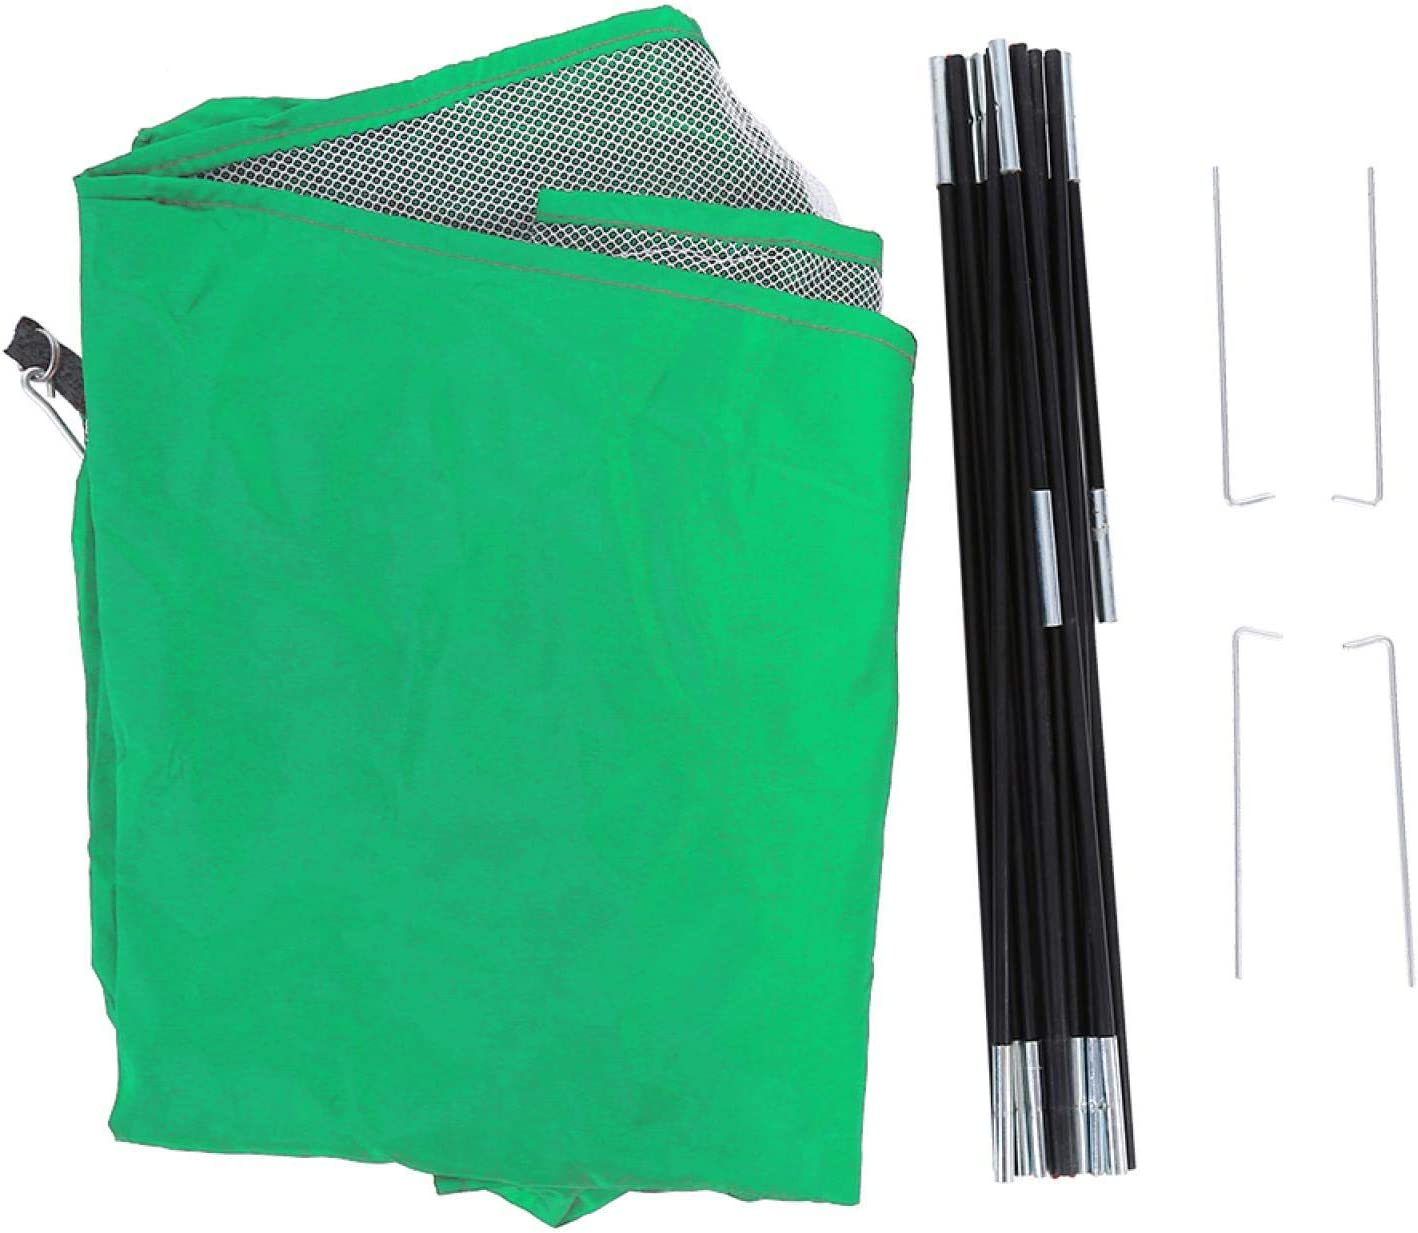 Fort Worth Selling and selling Mall Golf Hitting Net Collapsible Nylon Chipping Green Mesh